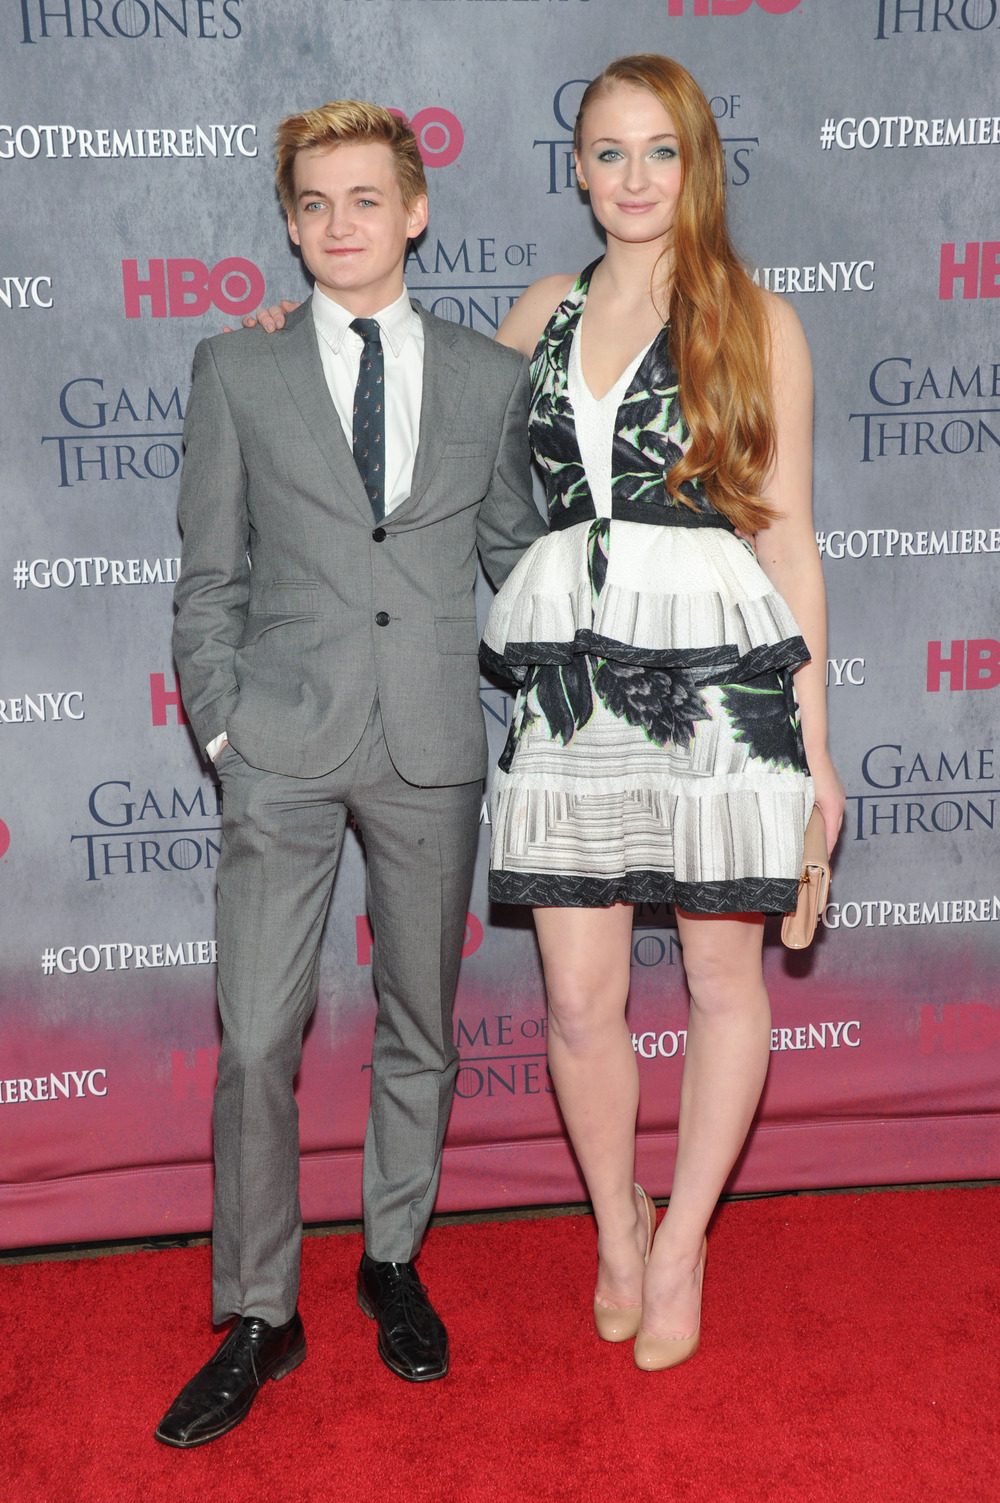 How Old Is Game of Thrones Star Jack Gleeson?